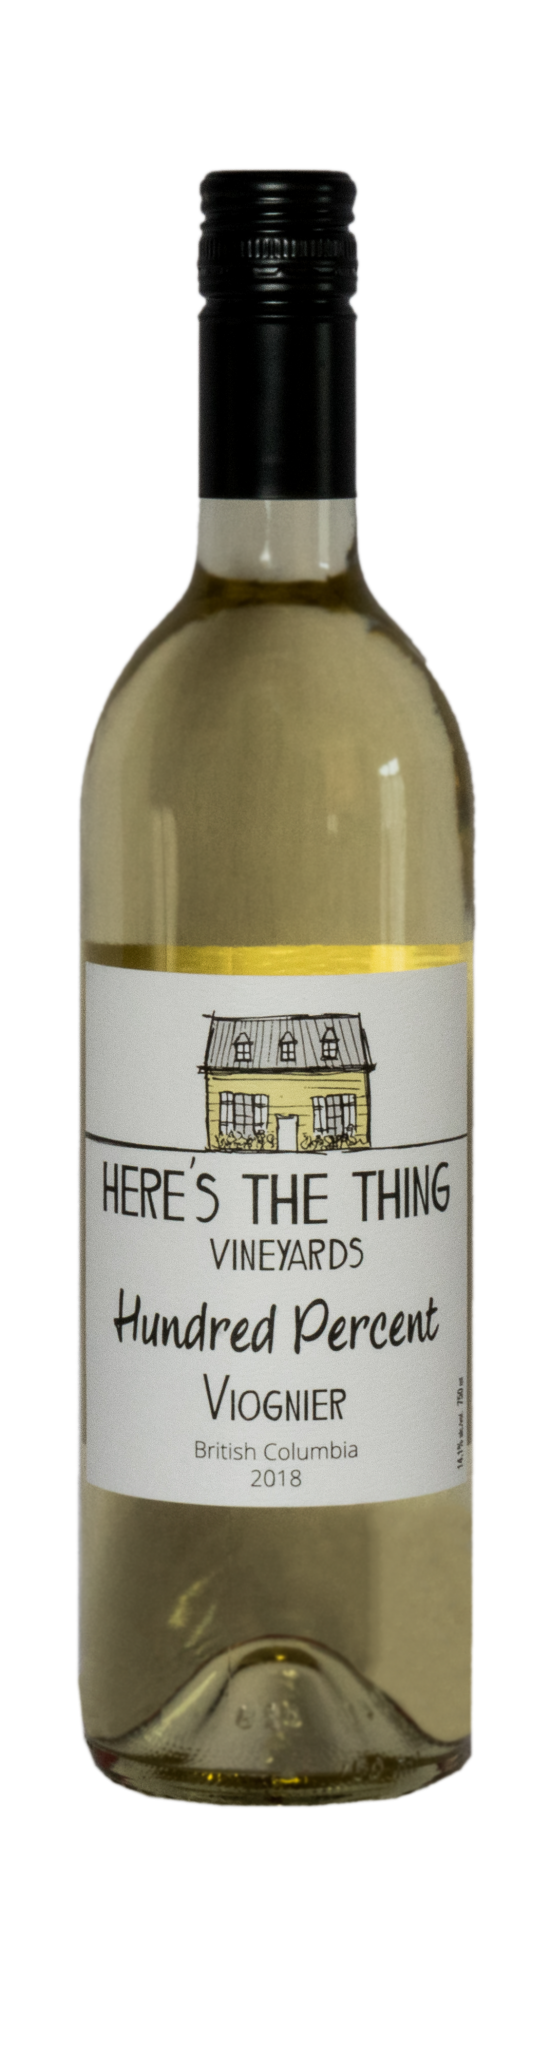 HTTV Bottle shot viognier